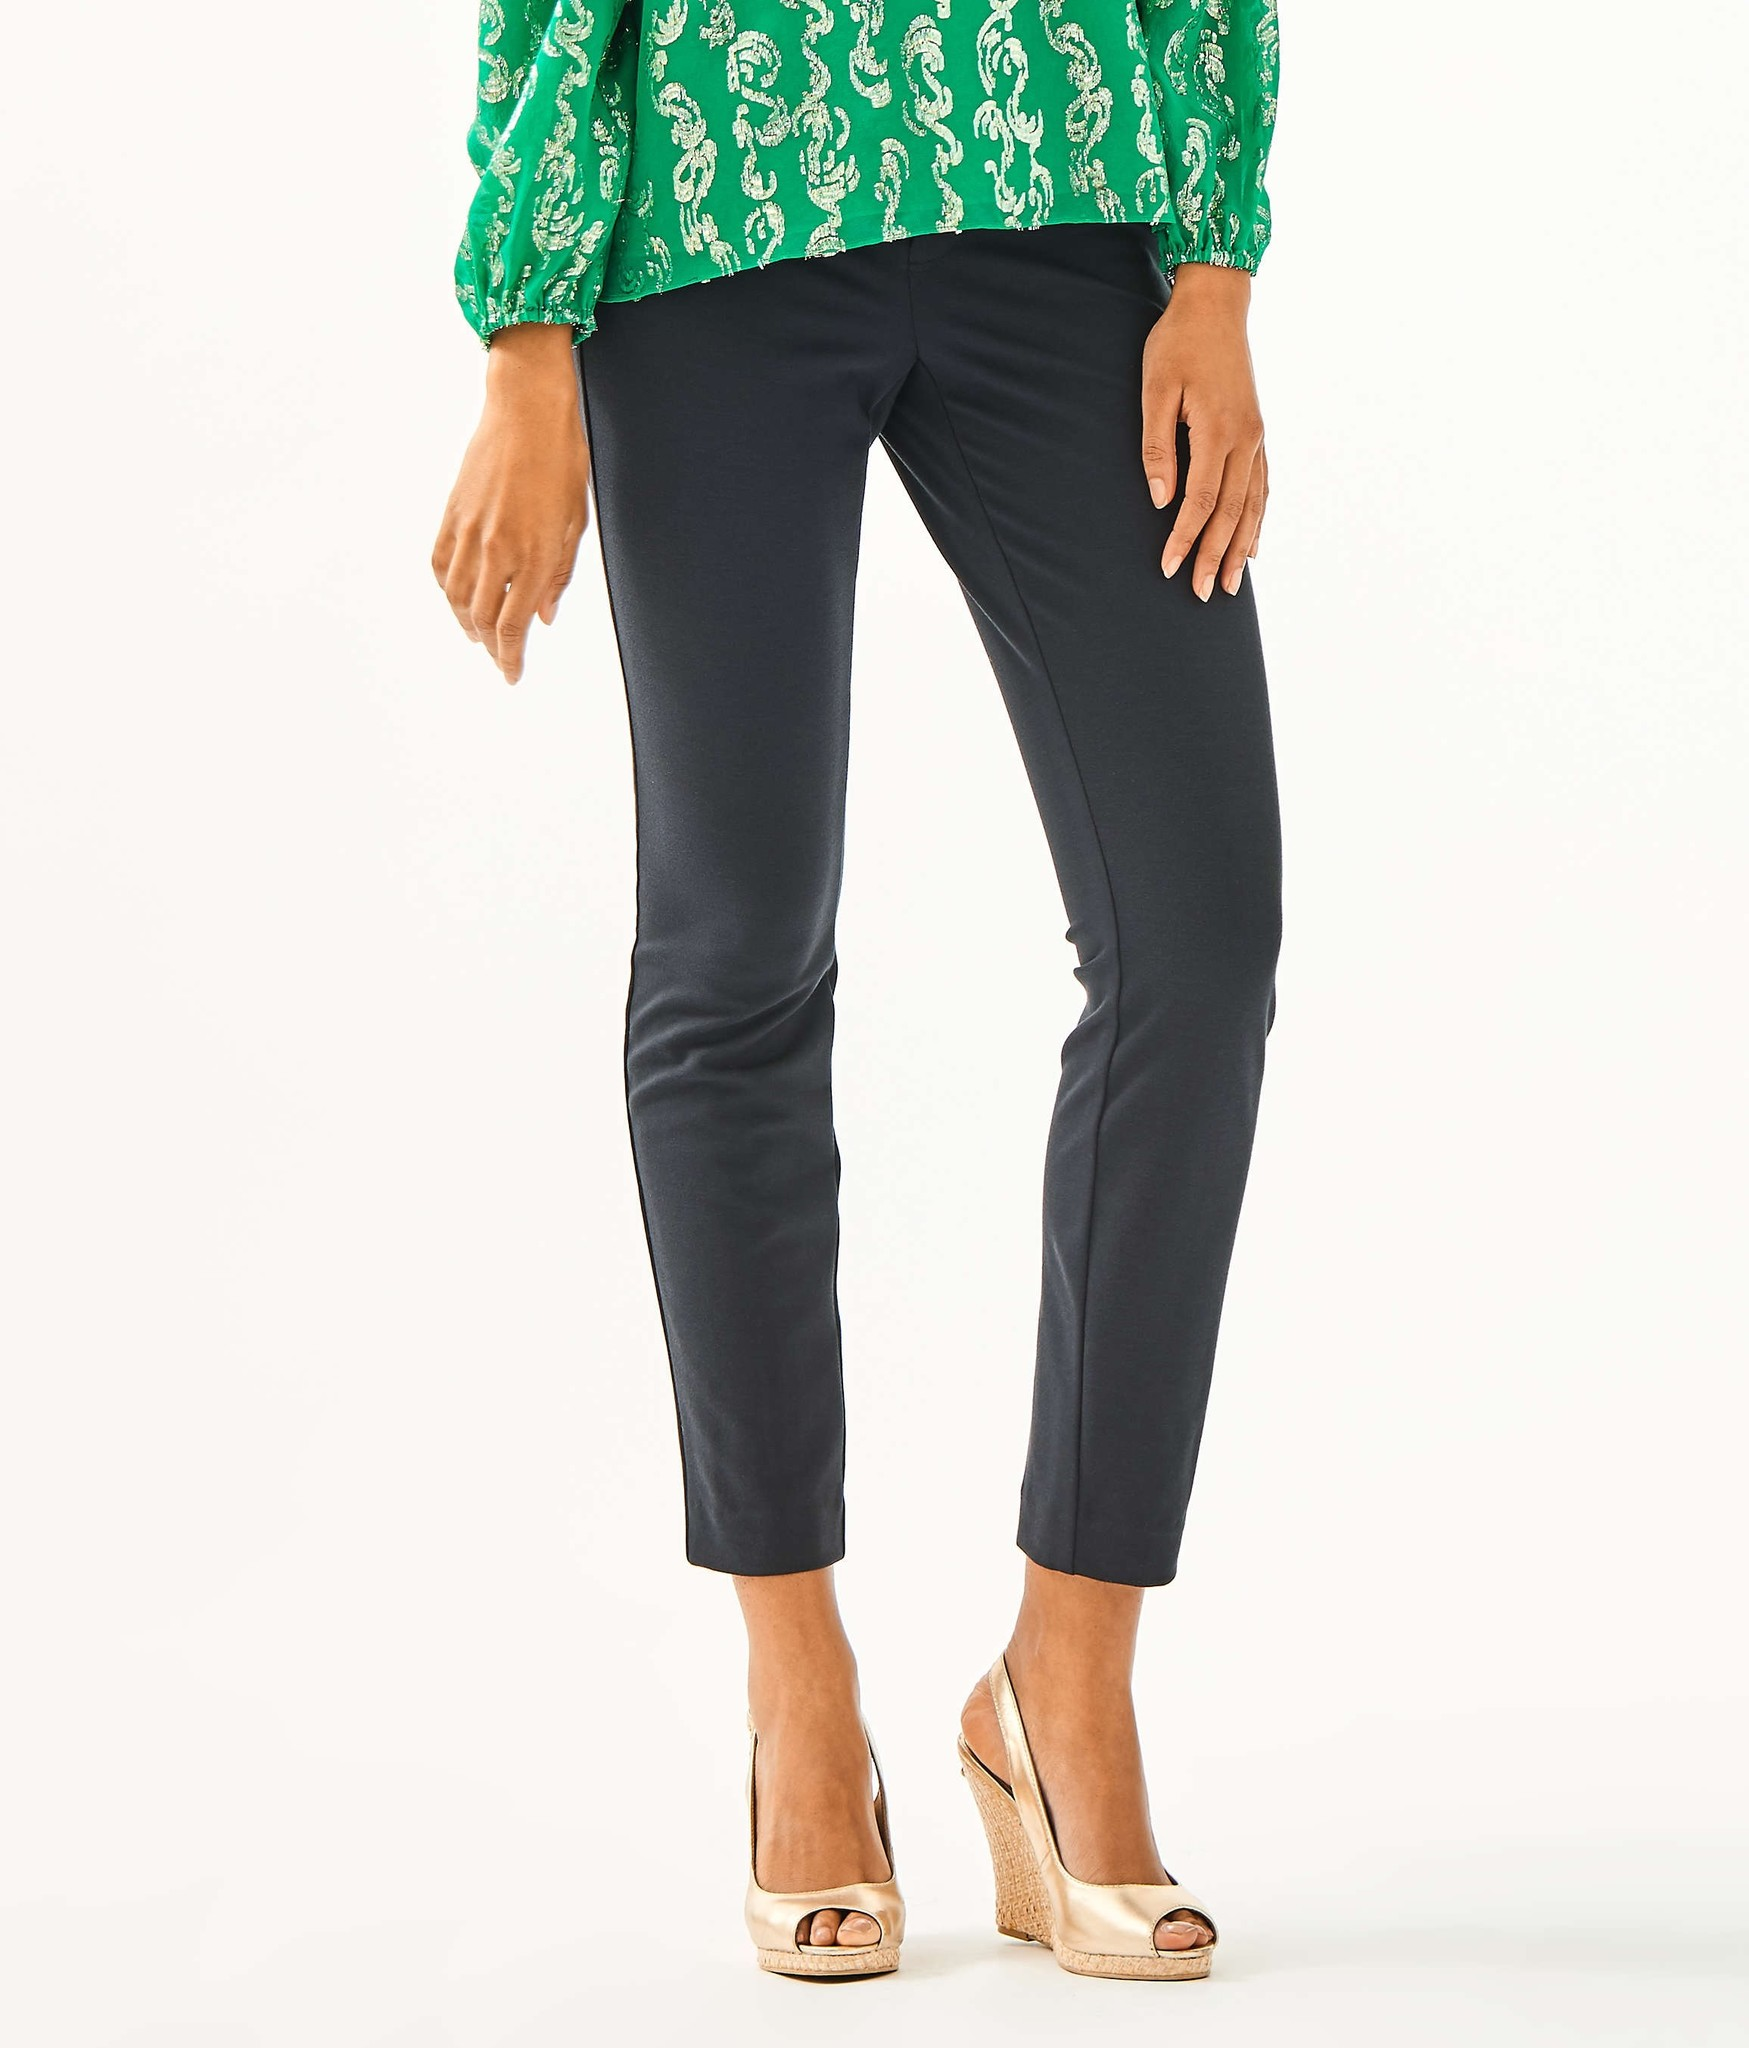 Kelly High Rise Knit Skinny Ankle Pant